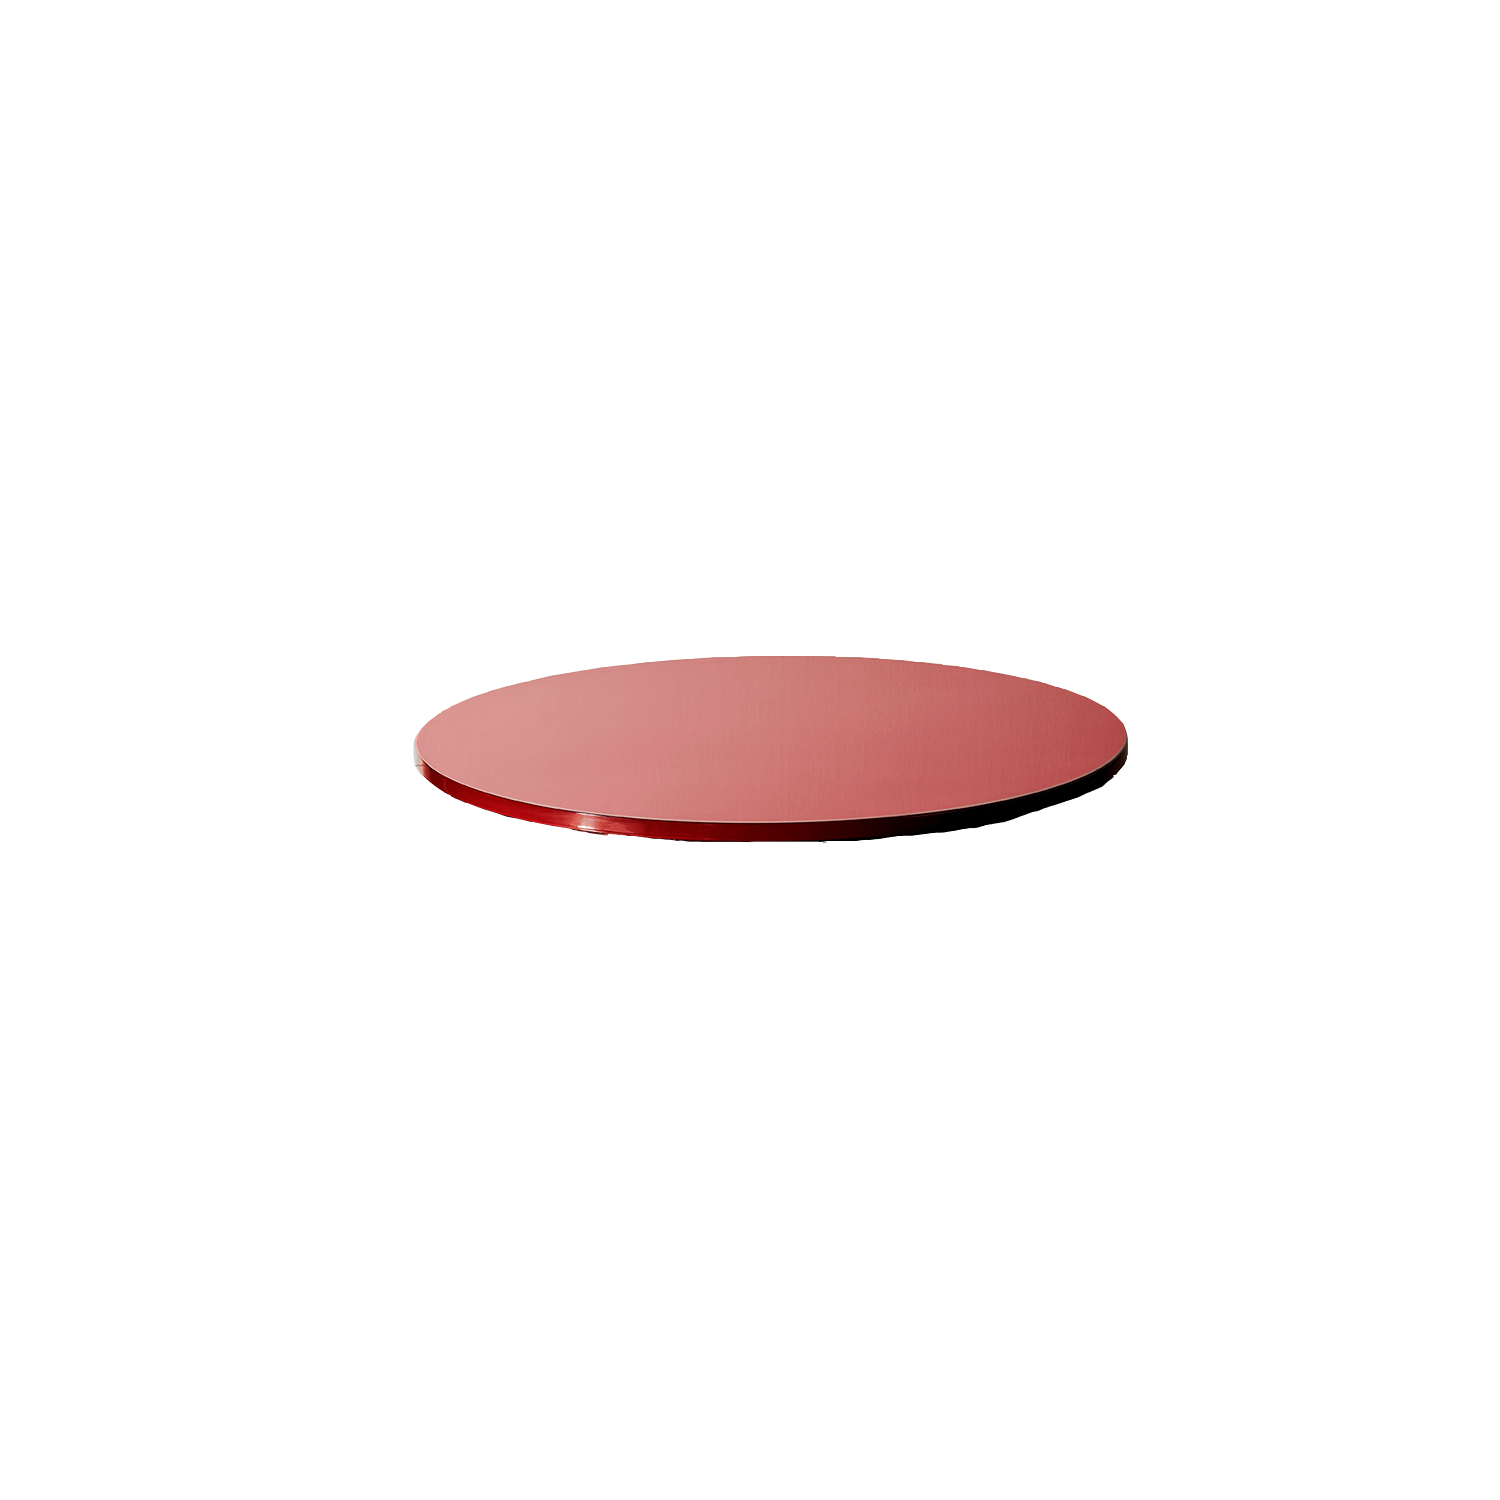 Lazy Susan Tray - Here is a smart one: Lazy Susan is a tray with swivel mechanism optional for dining tables, which can be functionally placed at the centre of the table, easily serving all the diners, or simply as a decorative element. Available in lacquer or marble finishes with a bronzed brass or platinum steel tip. Please enquire for more details | Matter of Stuff